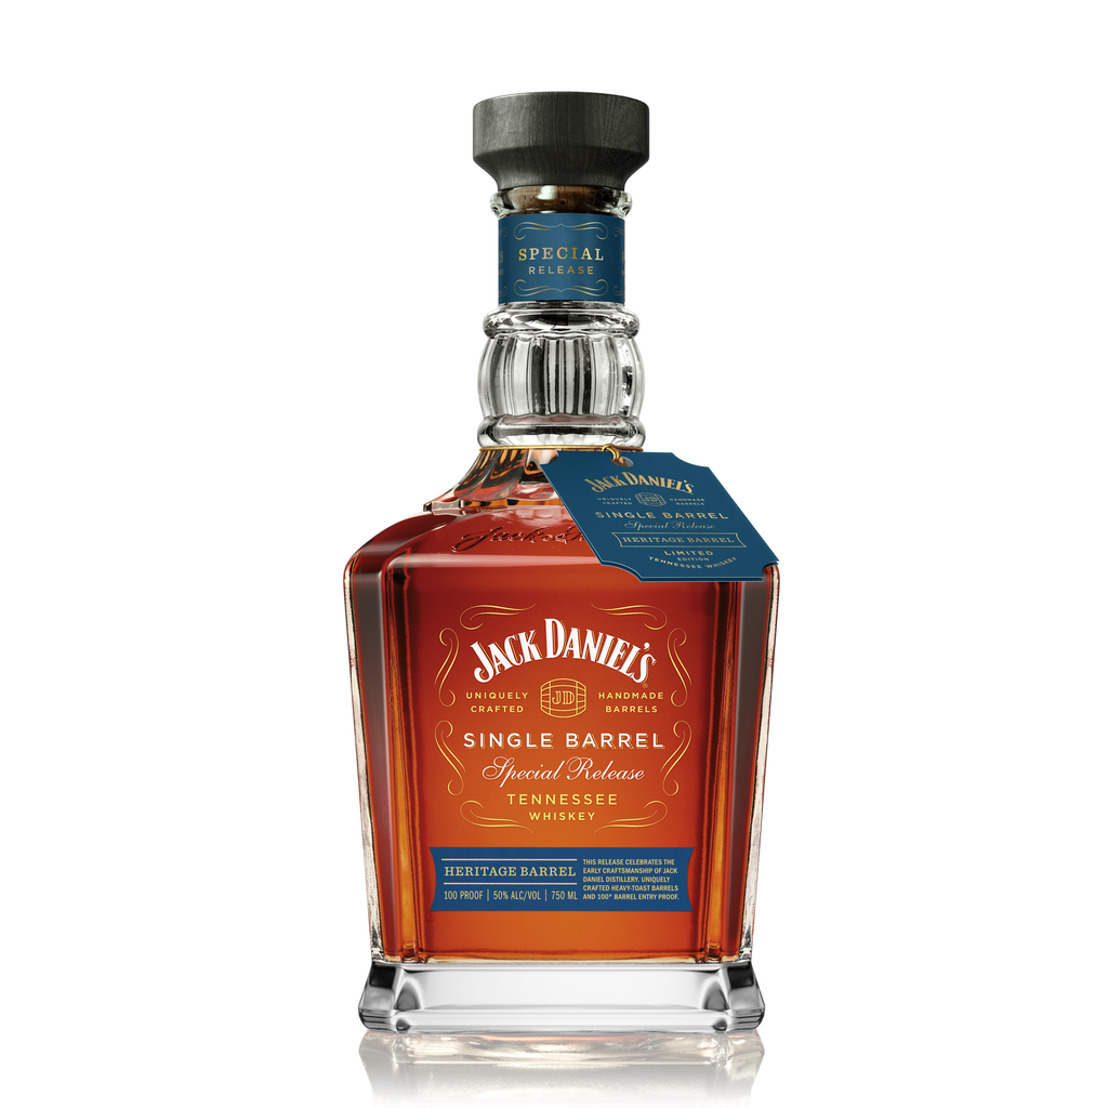 "Jack Daniel's presenta Single Barrel ""Heritage Barrel"" Tennessee Whiskey"